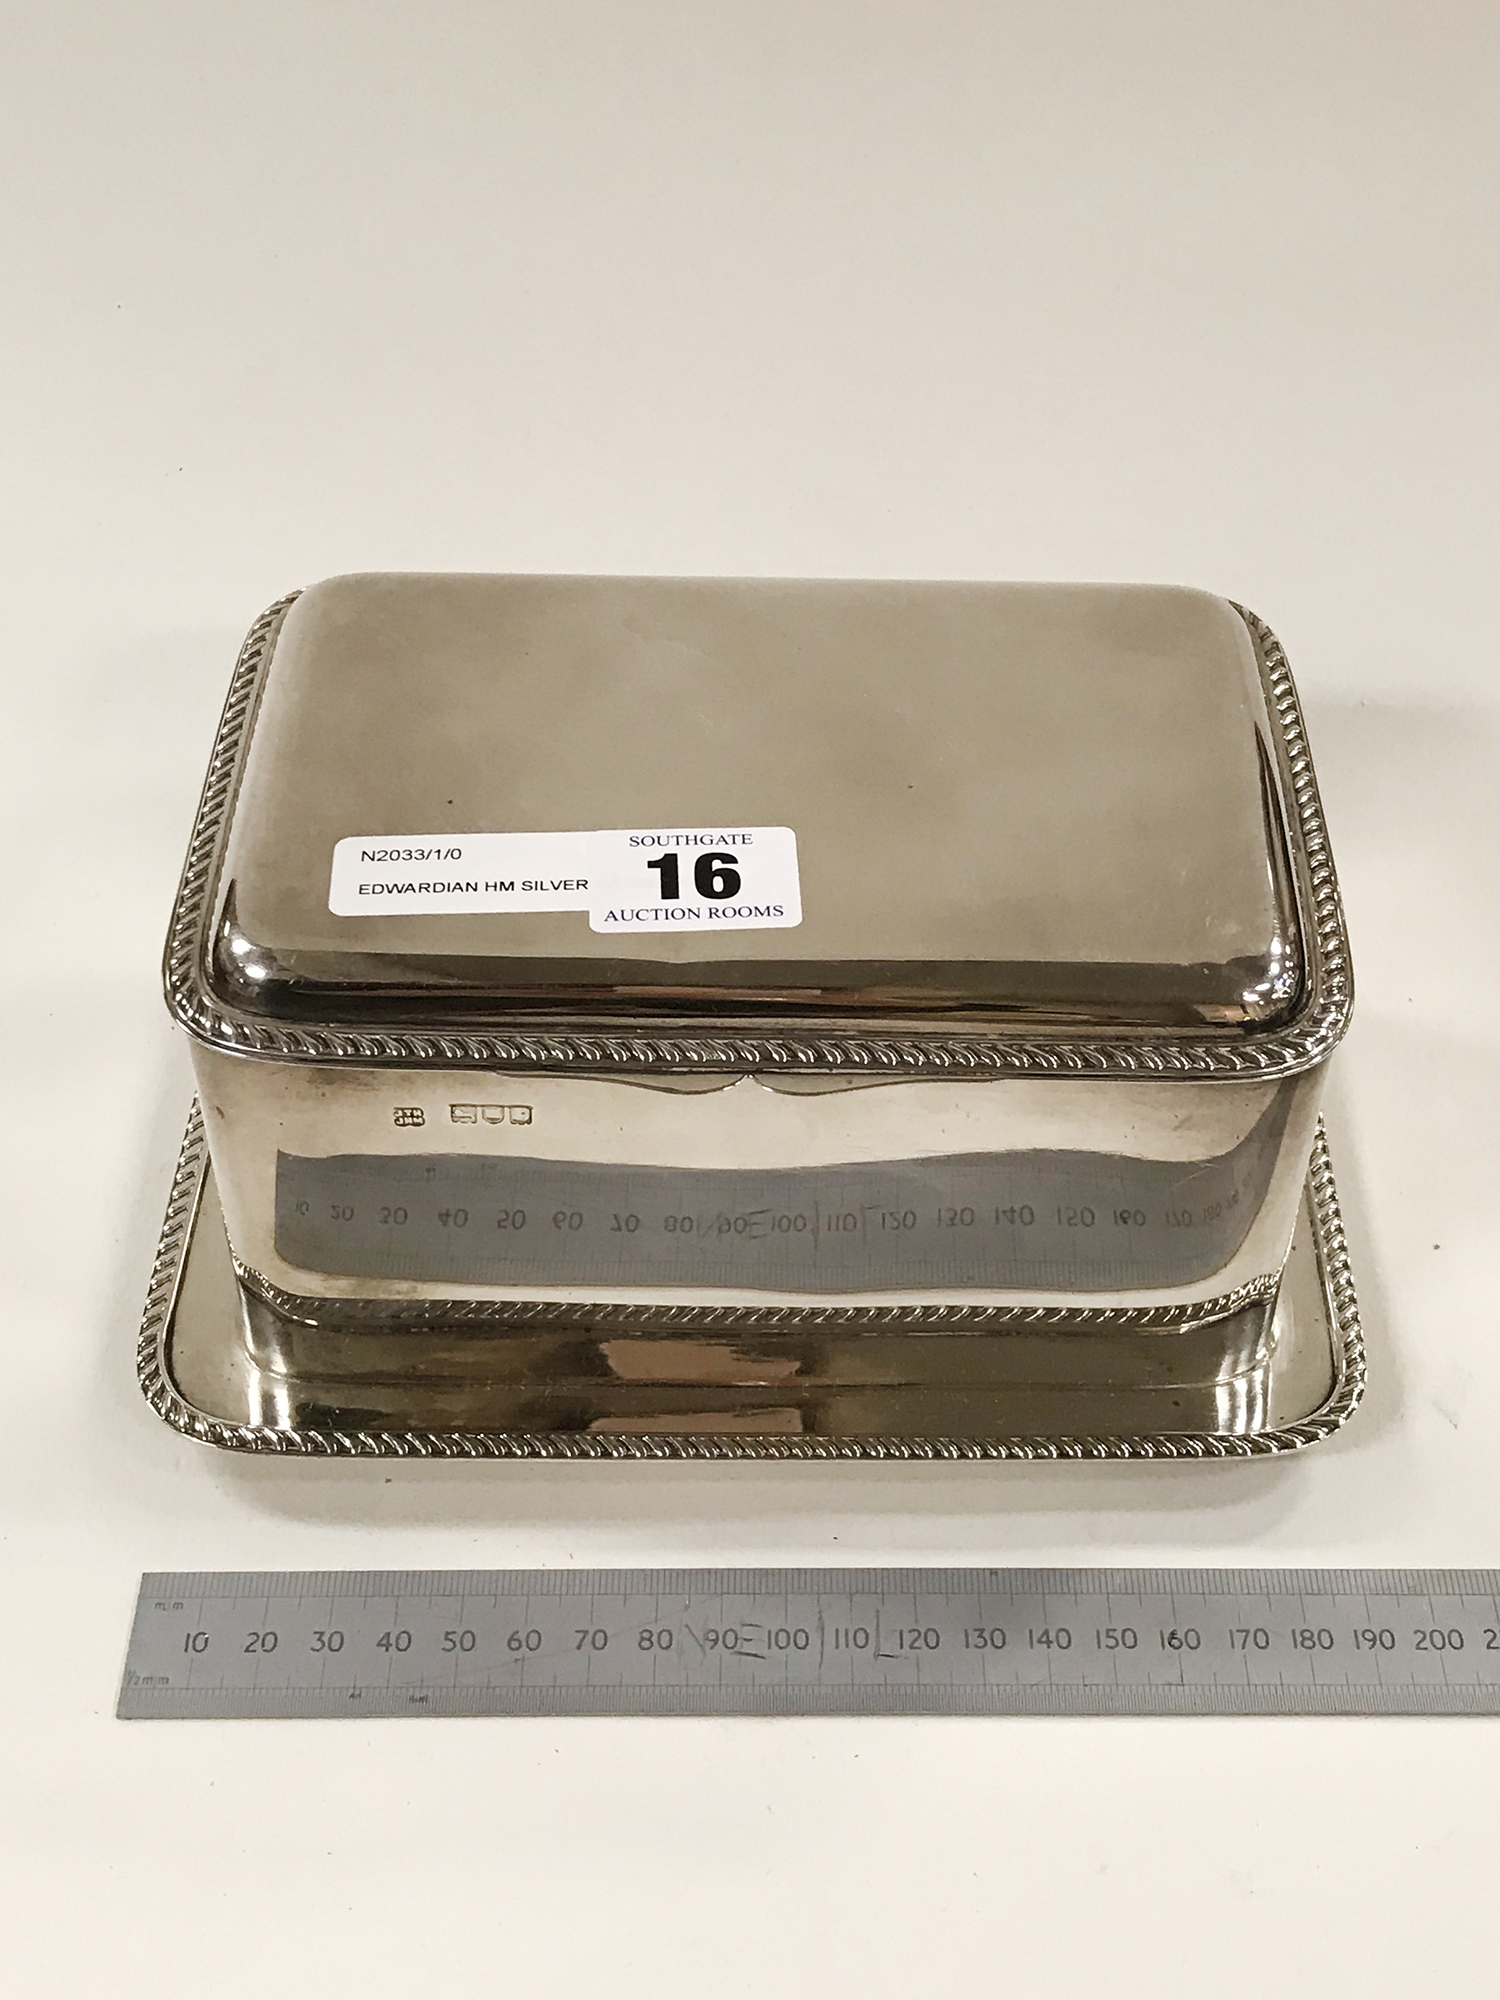 EDWARDIAN HM SILVER CASKET IN GREAT CONDITION - Image 2 of 5